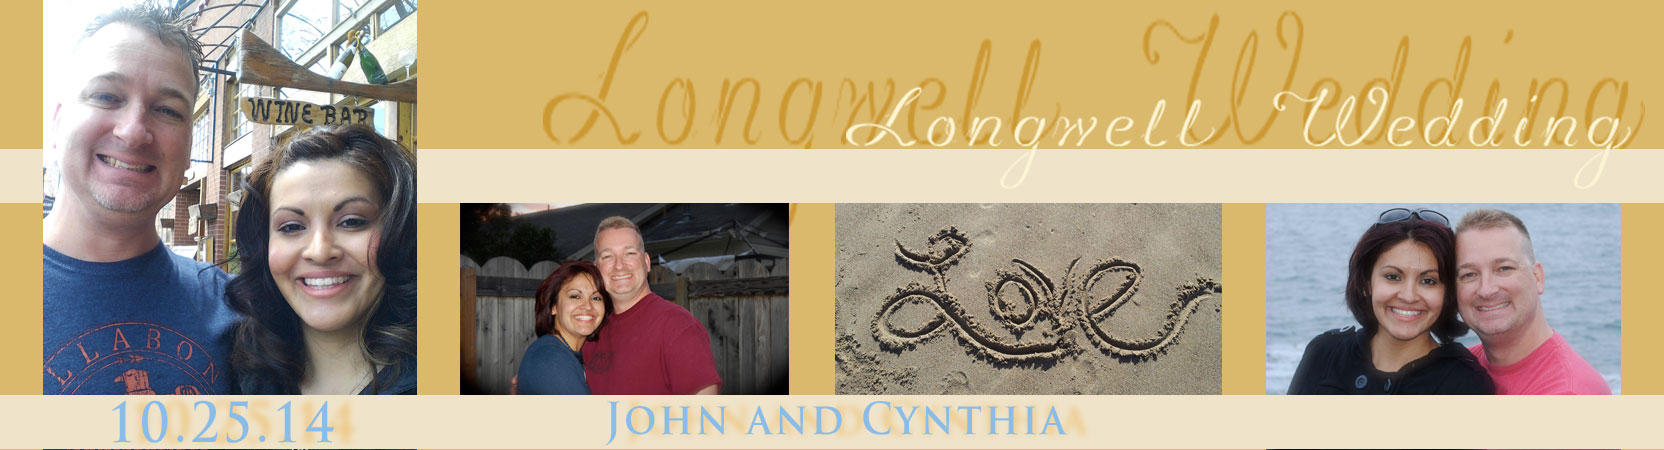 Wedding Logo Cynthia and John Picture Collage